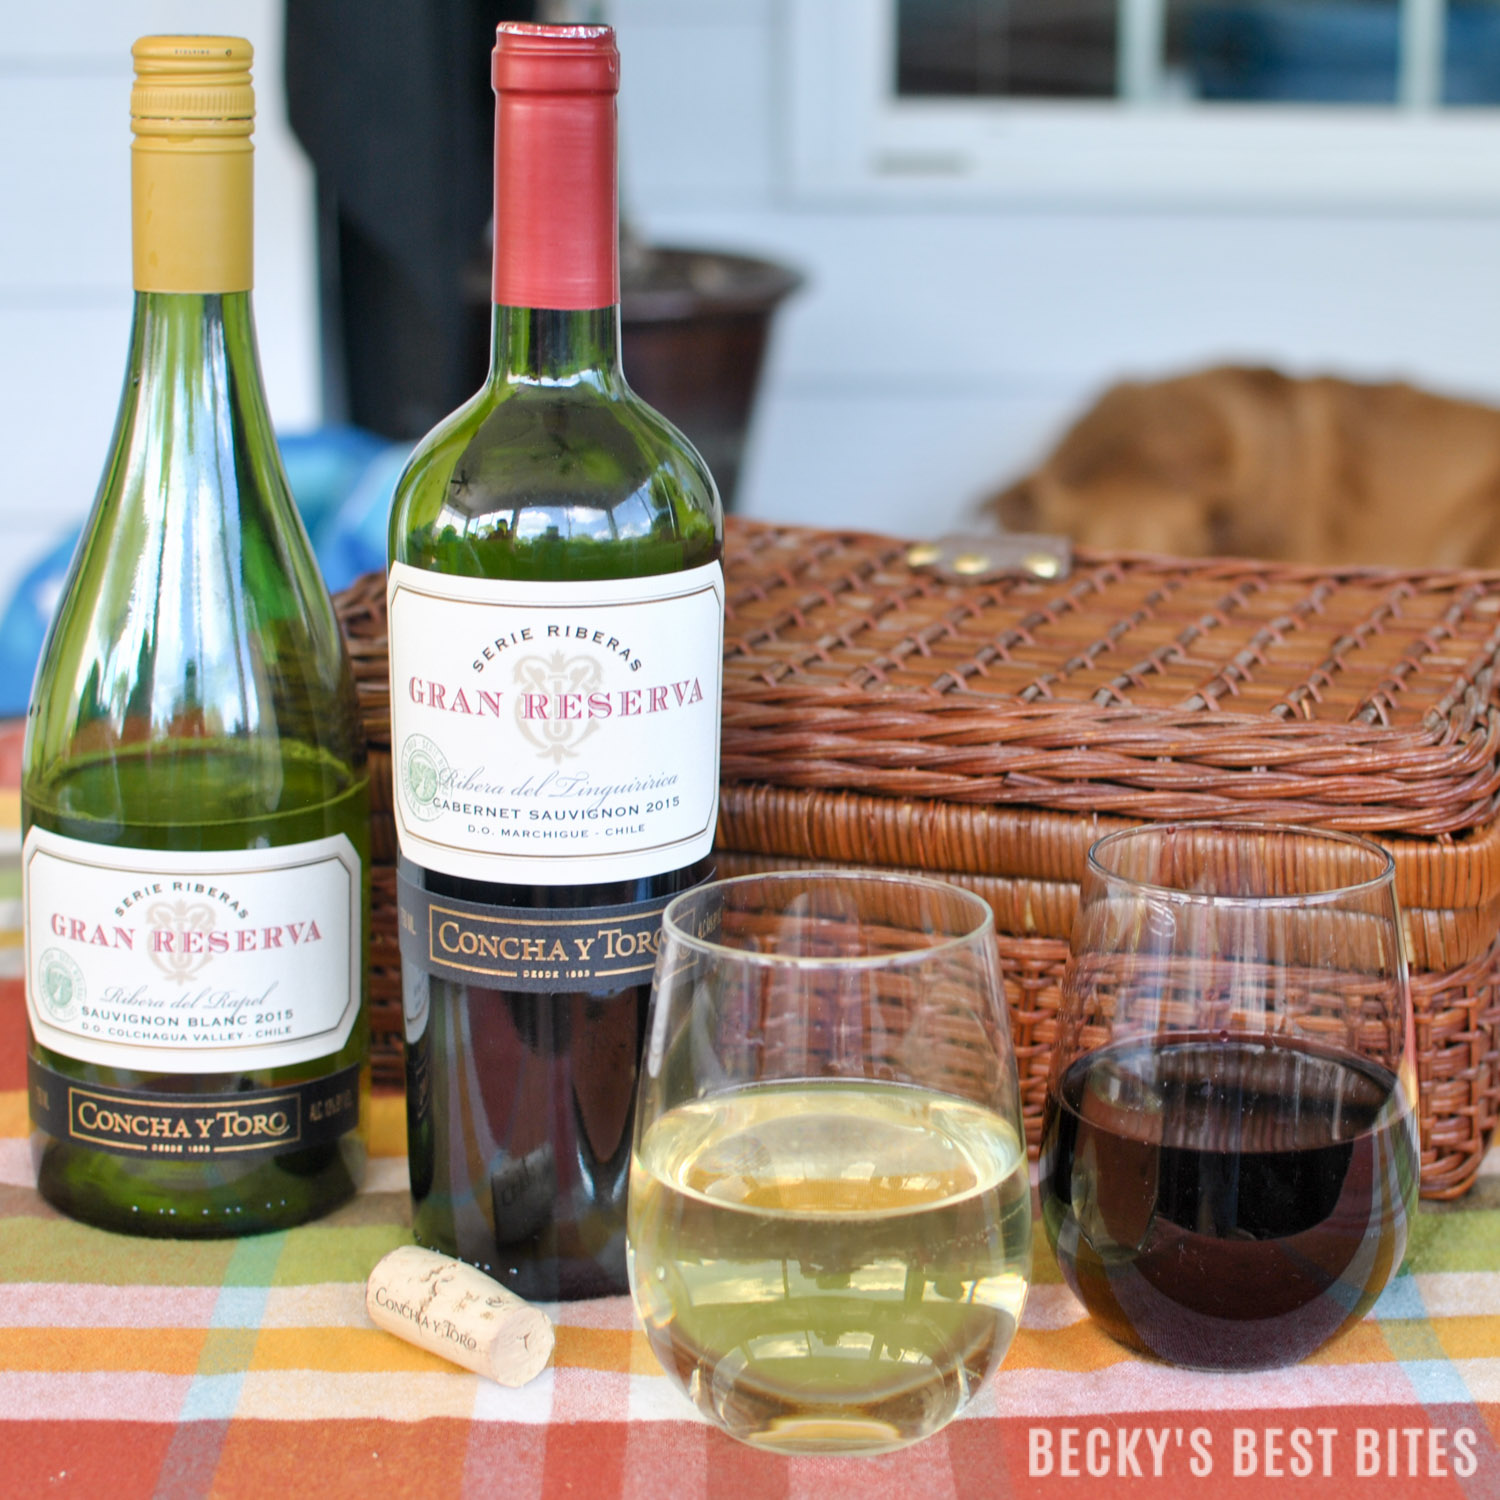 How I Wine Down While My Family Golfs! Learn how to enjoy a $25 credit on a round of golf at major golf courses nationwide & enter to win a year of FREE GOLF courtesy of Concha y Toro Gran Reserva Wines. #GranReservaGolf #ad  beckysbestbites.com